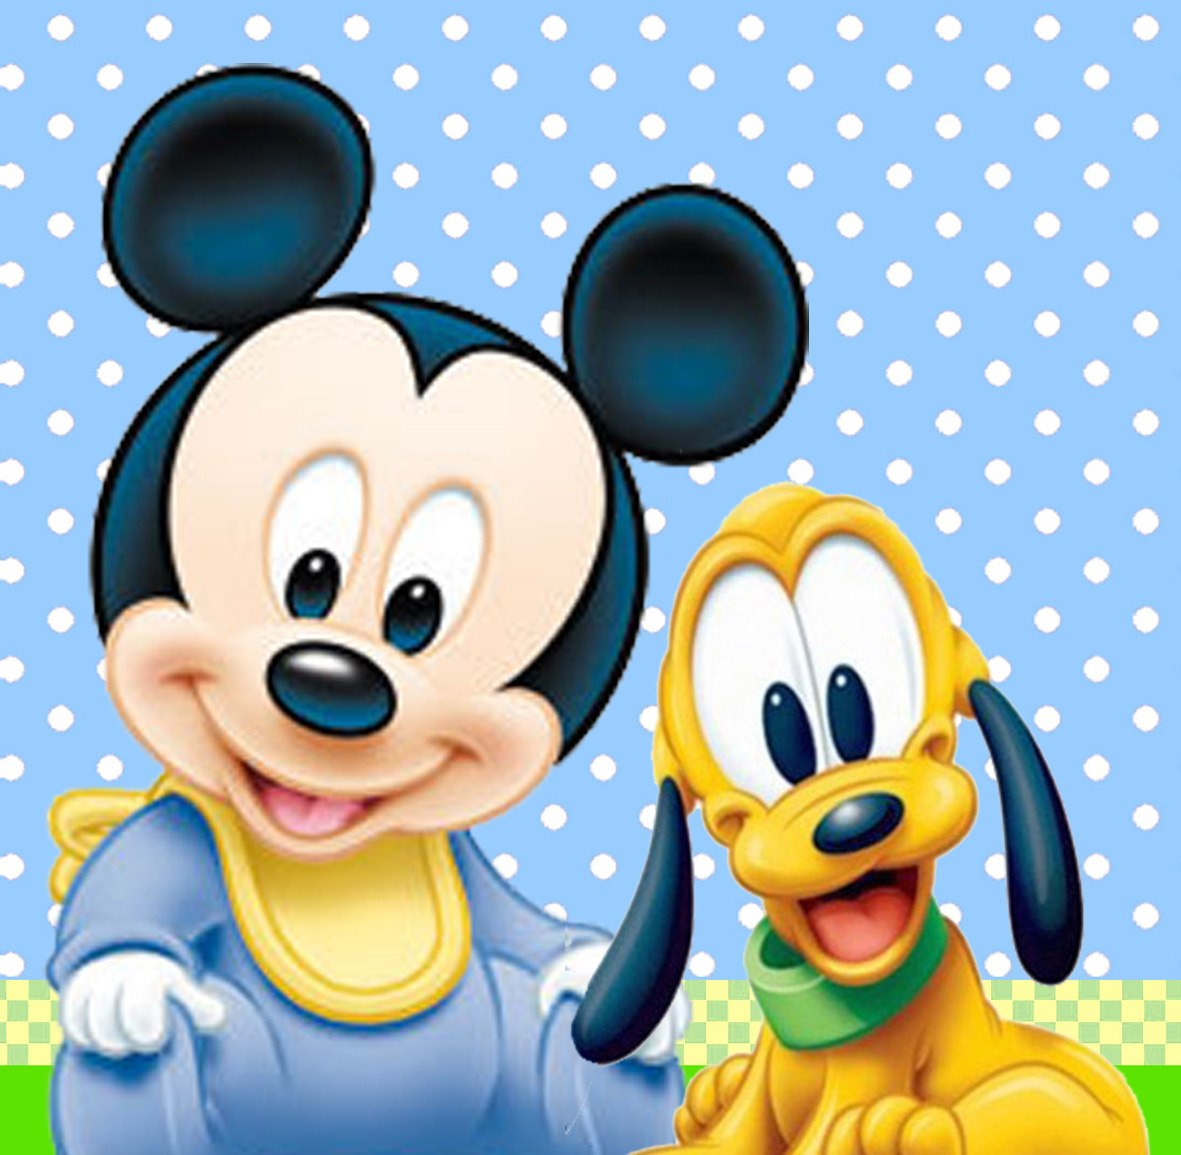 Mickey Mouse And Pluto We Heart It Baby And Pluto